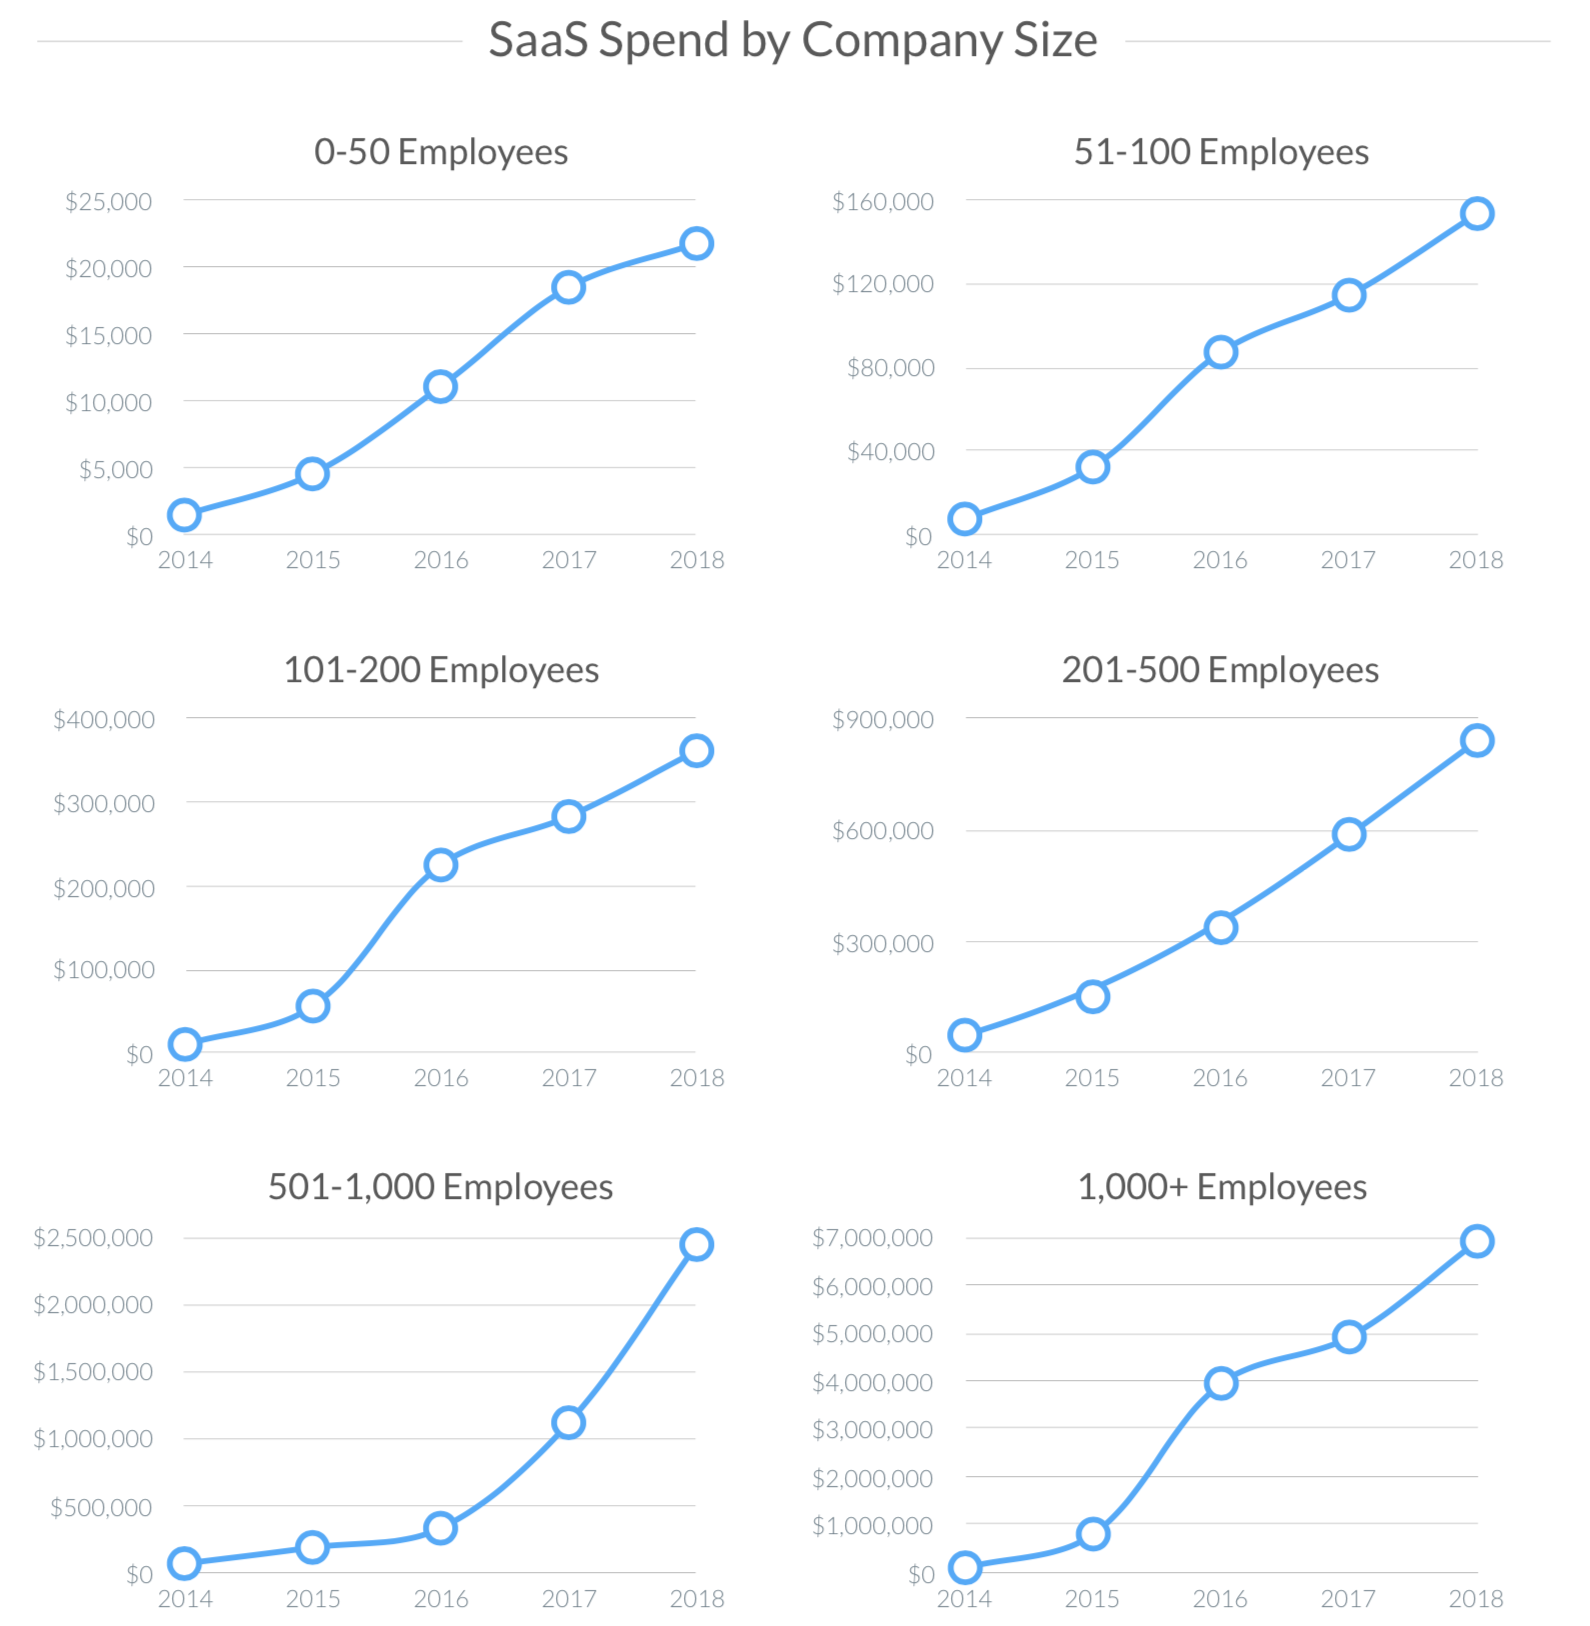 SaaS Spend by Company Size